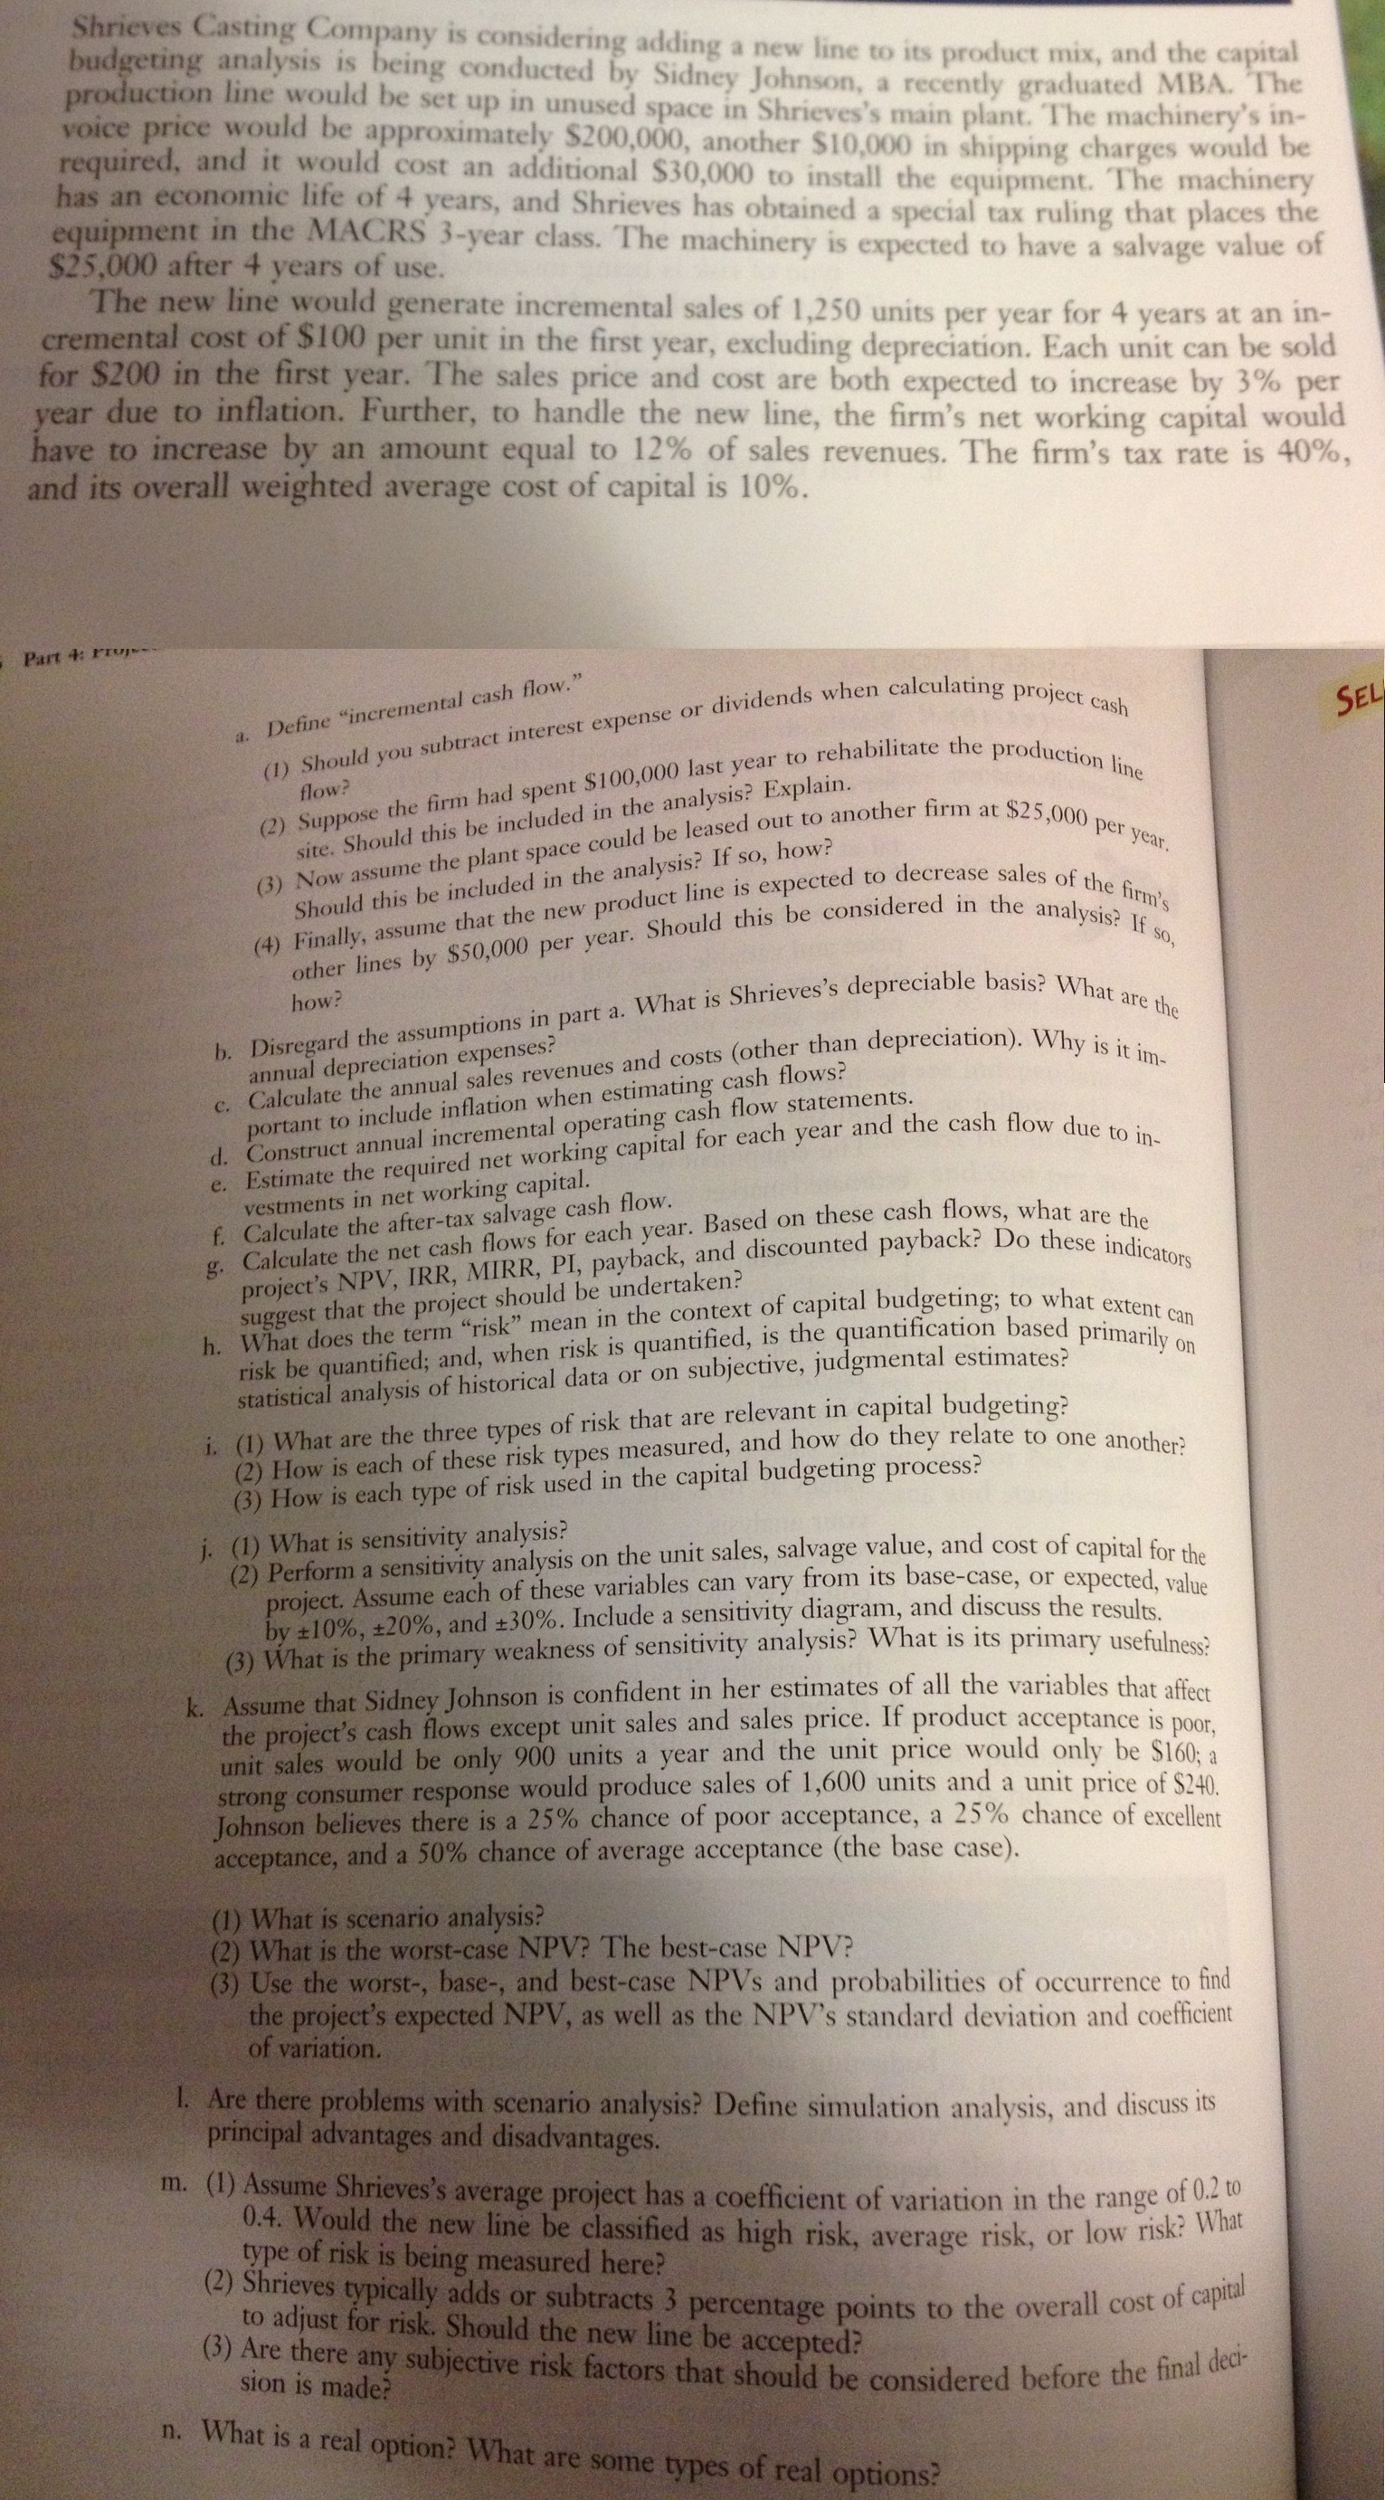 Need the solutions to Chapter 11 Minicase from Fin